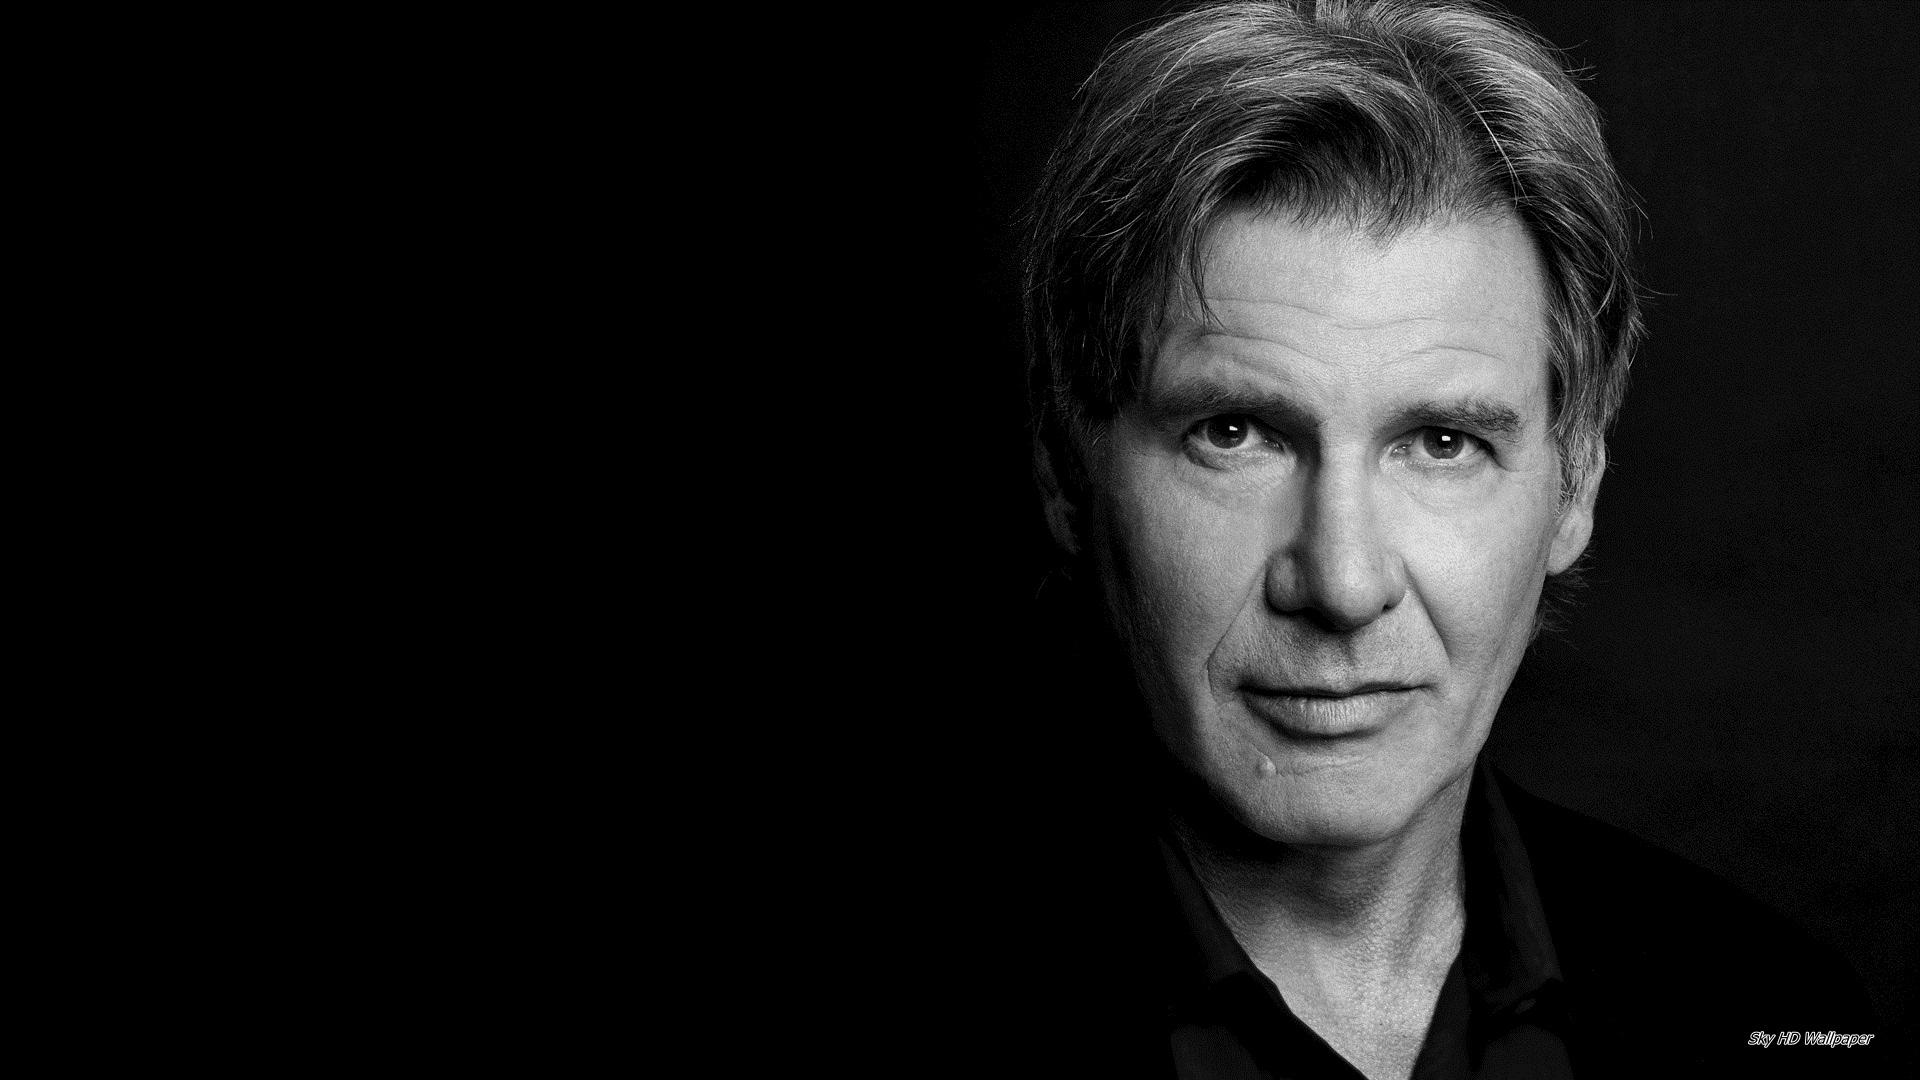 1920x1080 - Harrison Ford Wallpapers 26